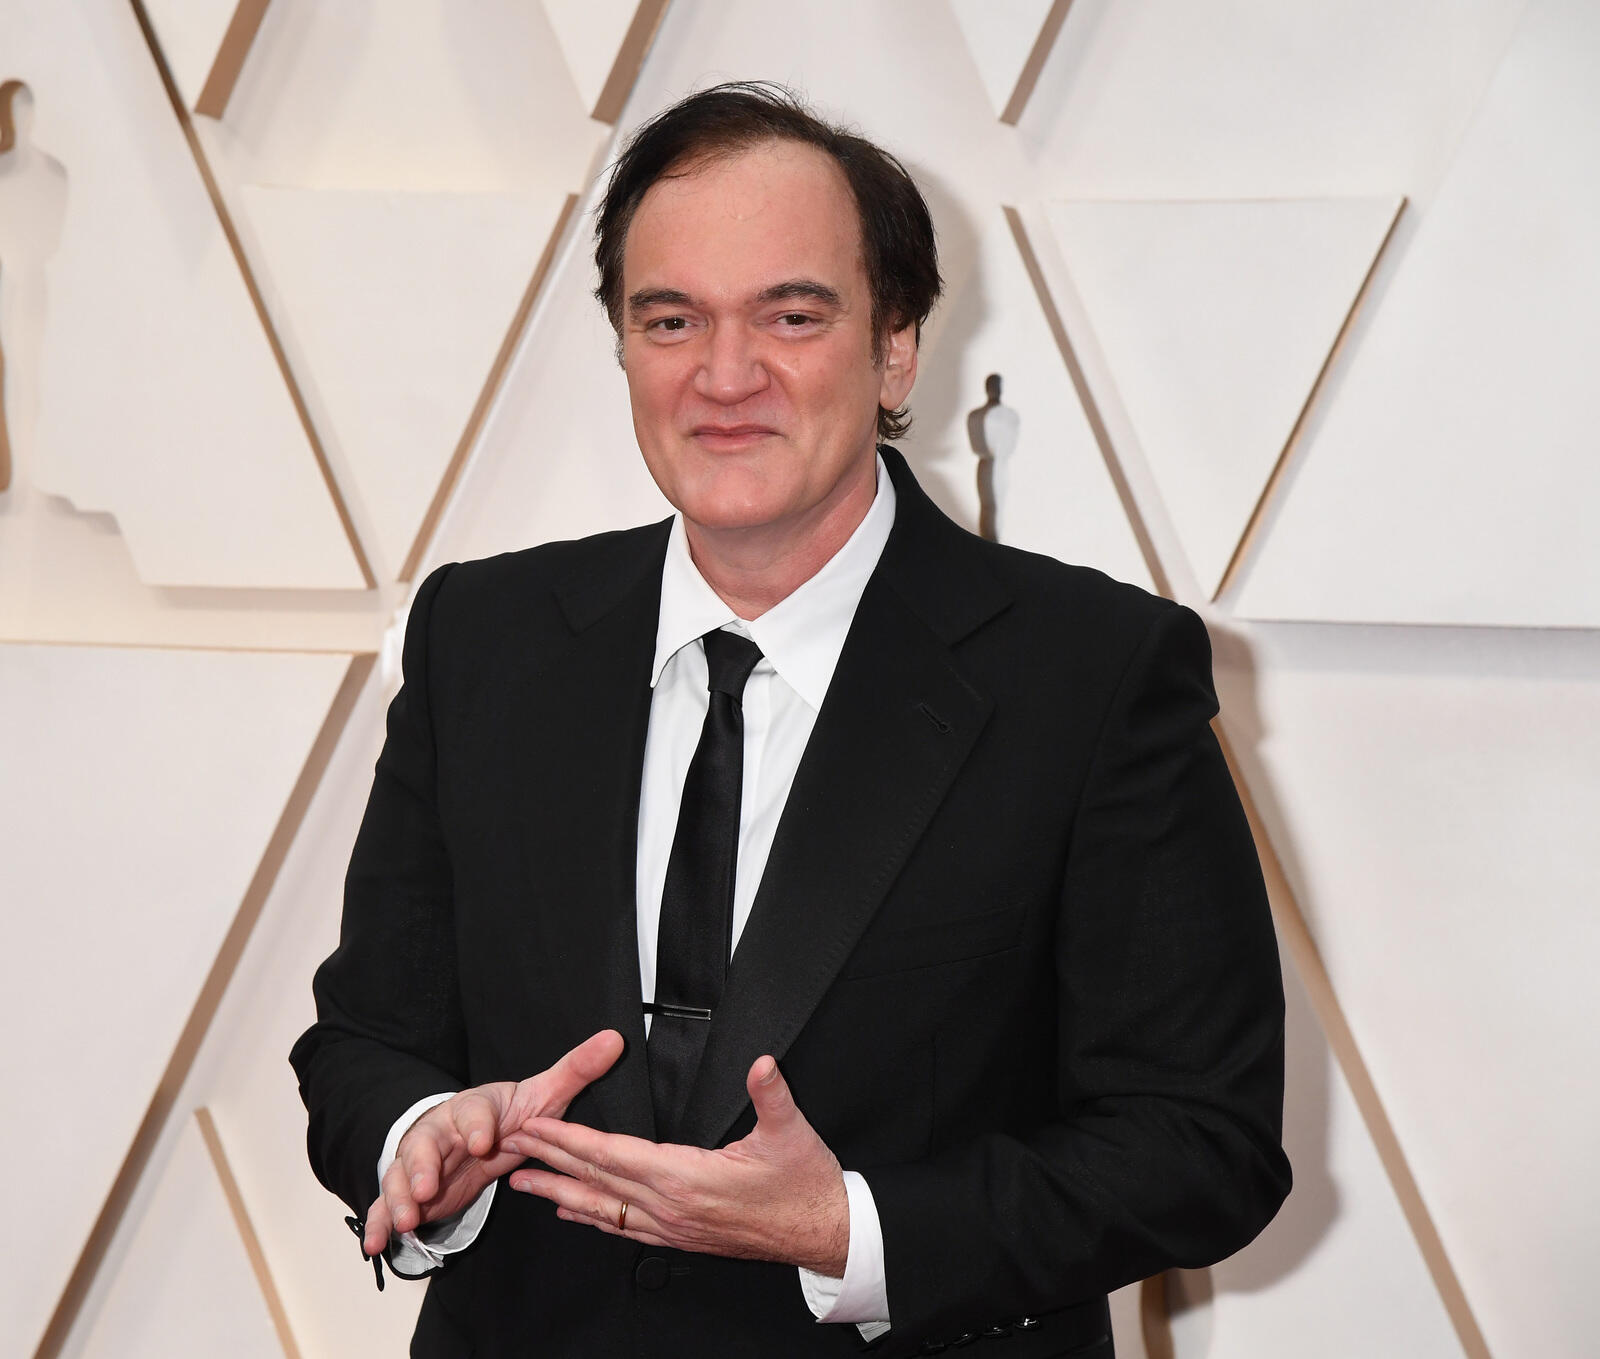 220: 07/02/21 - Quentin Tarantino Will Only Accept 'Once Upon a Time in Hollywood' Criticism from the Late Bruce Lee's Daughter